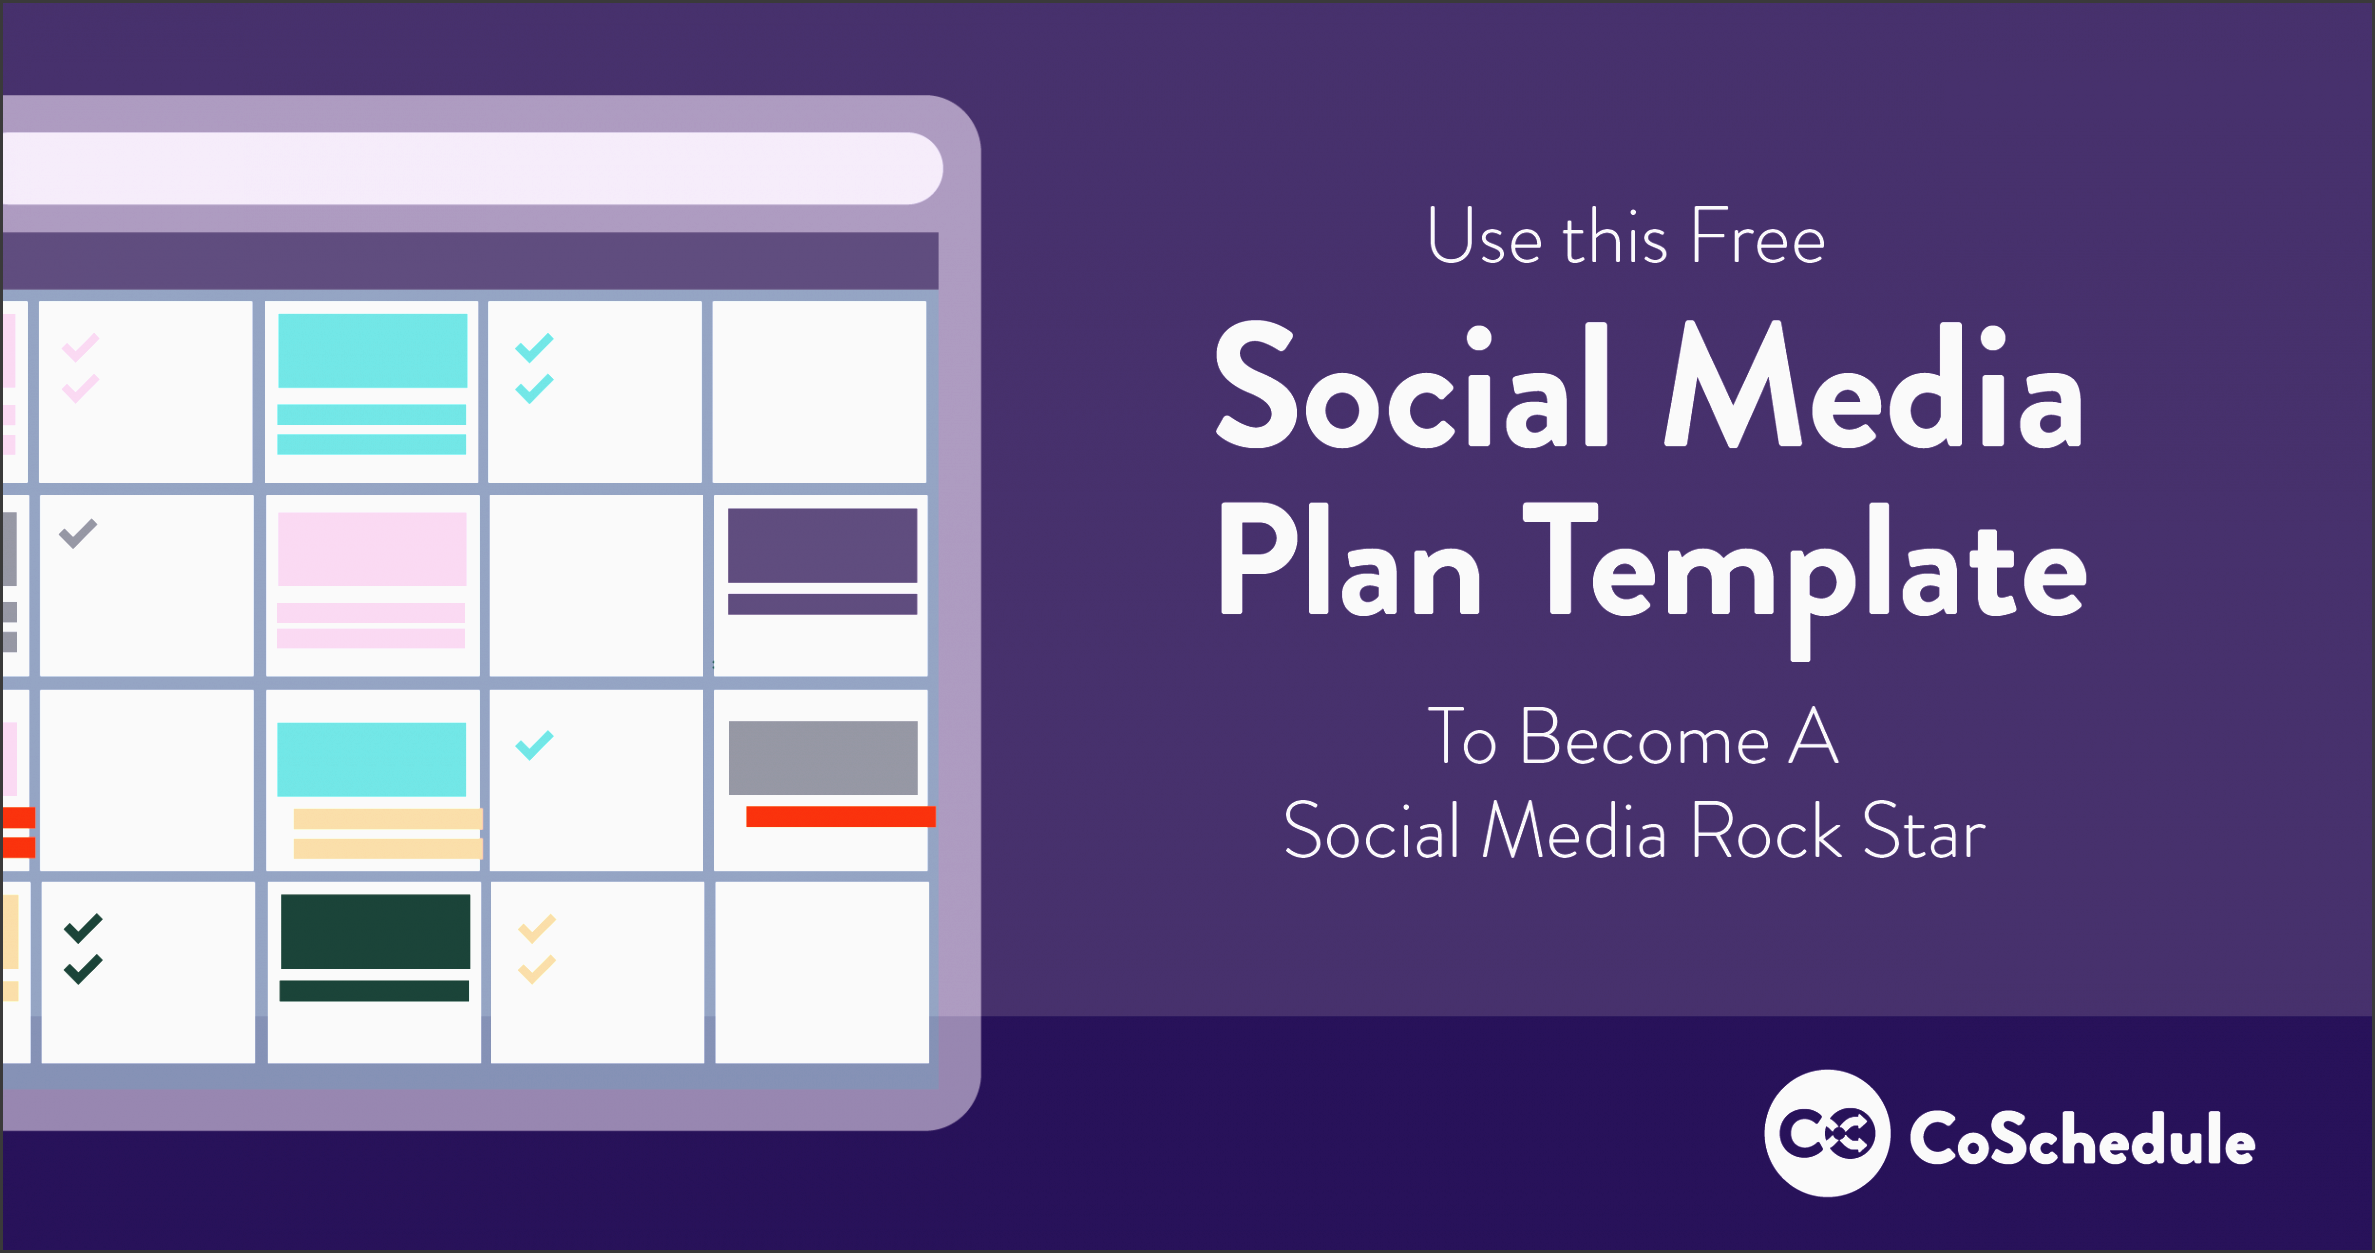 social media plan template meta image 01